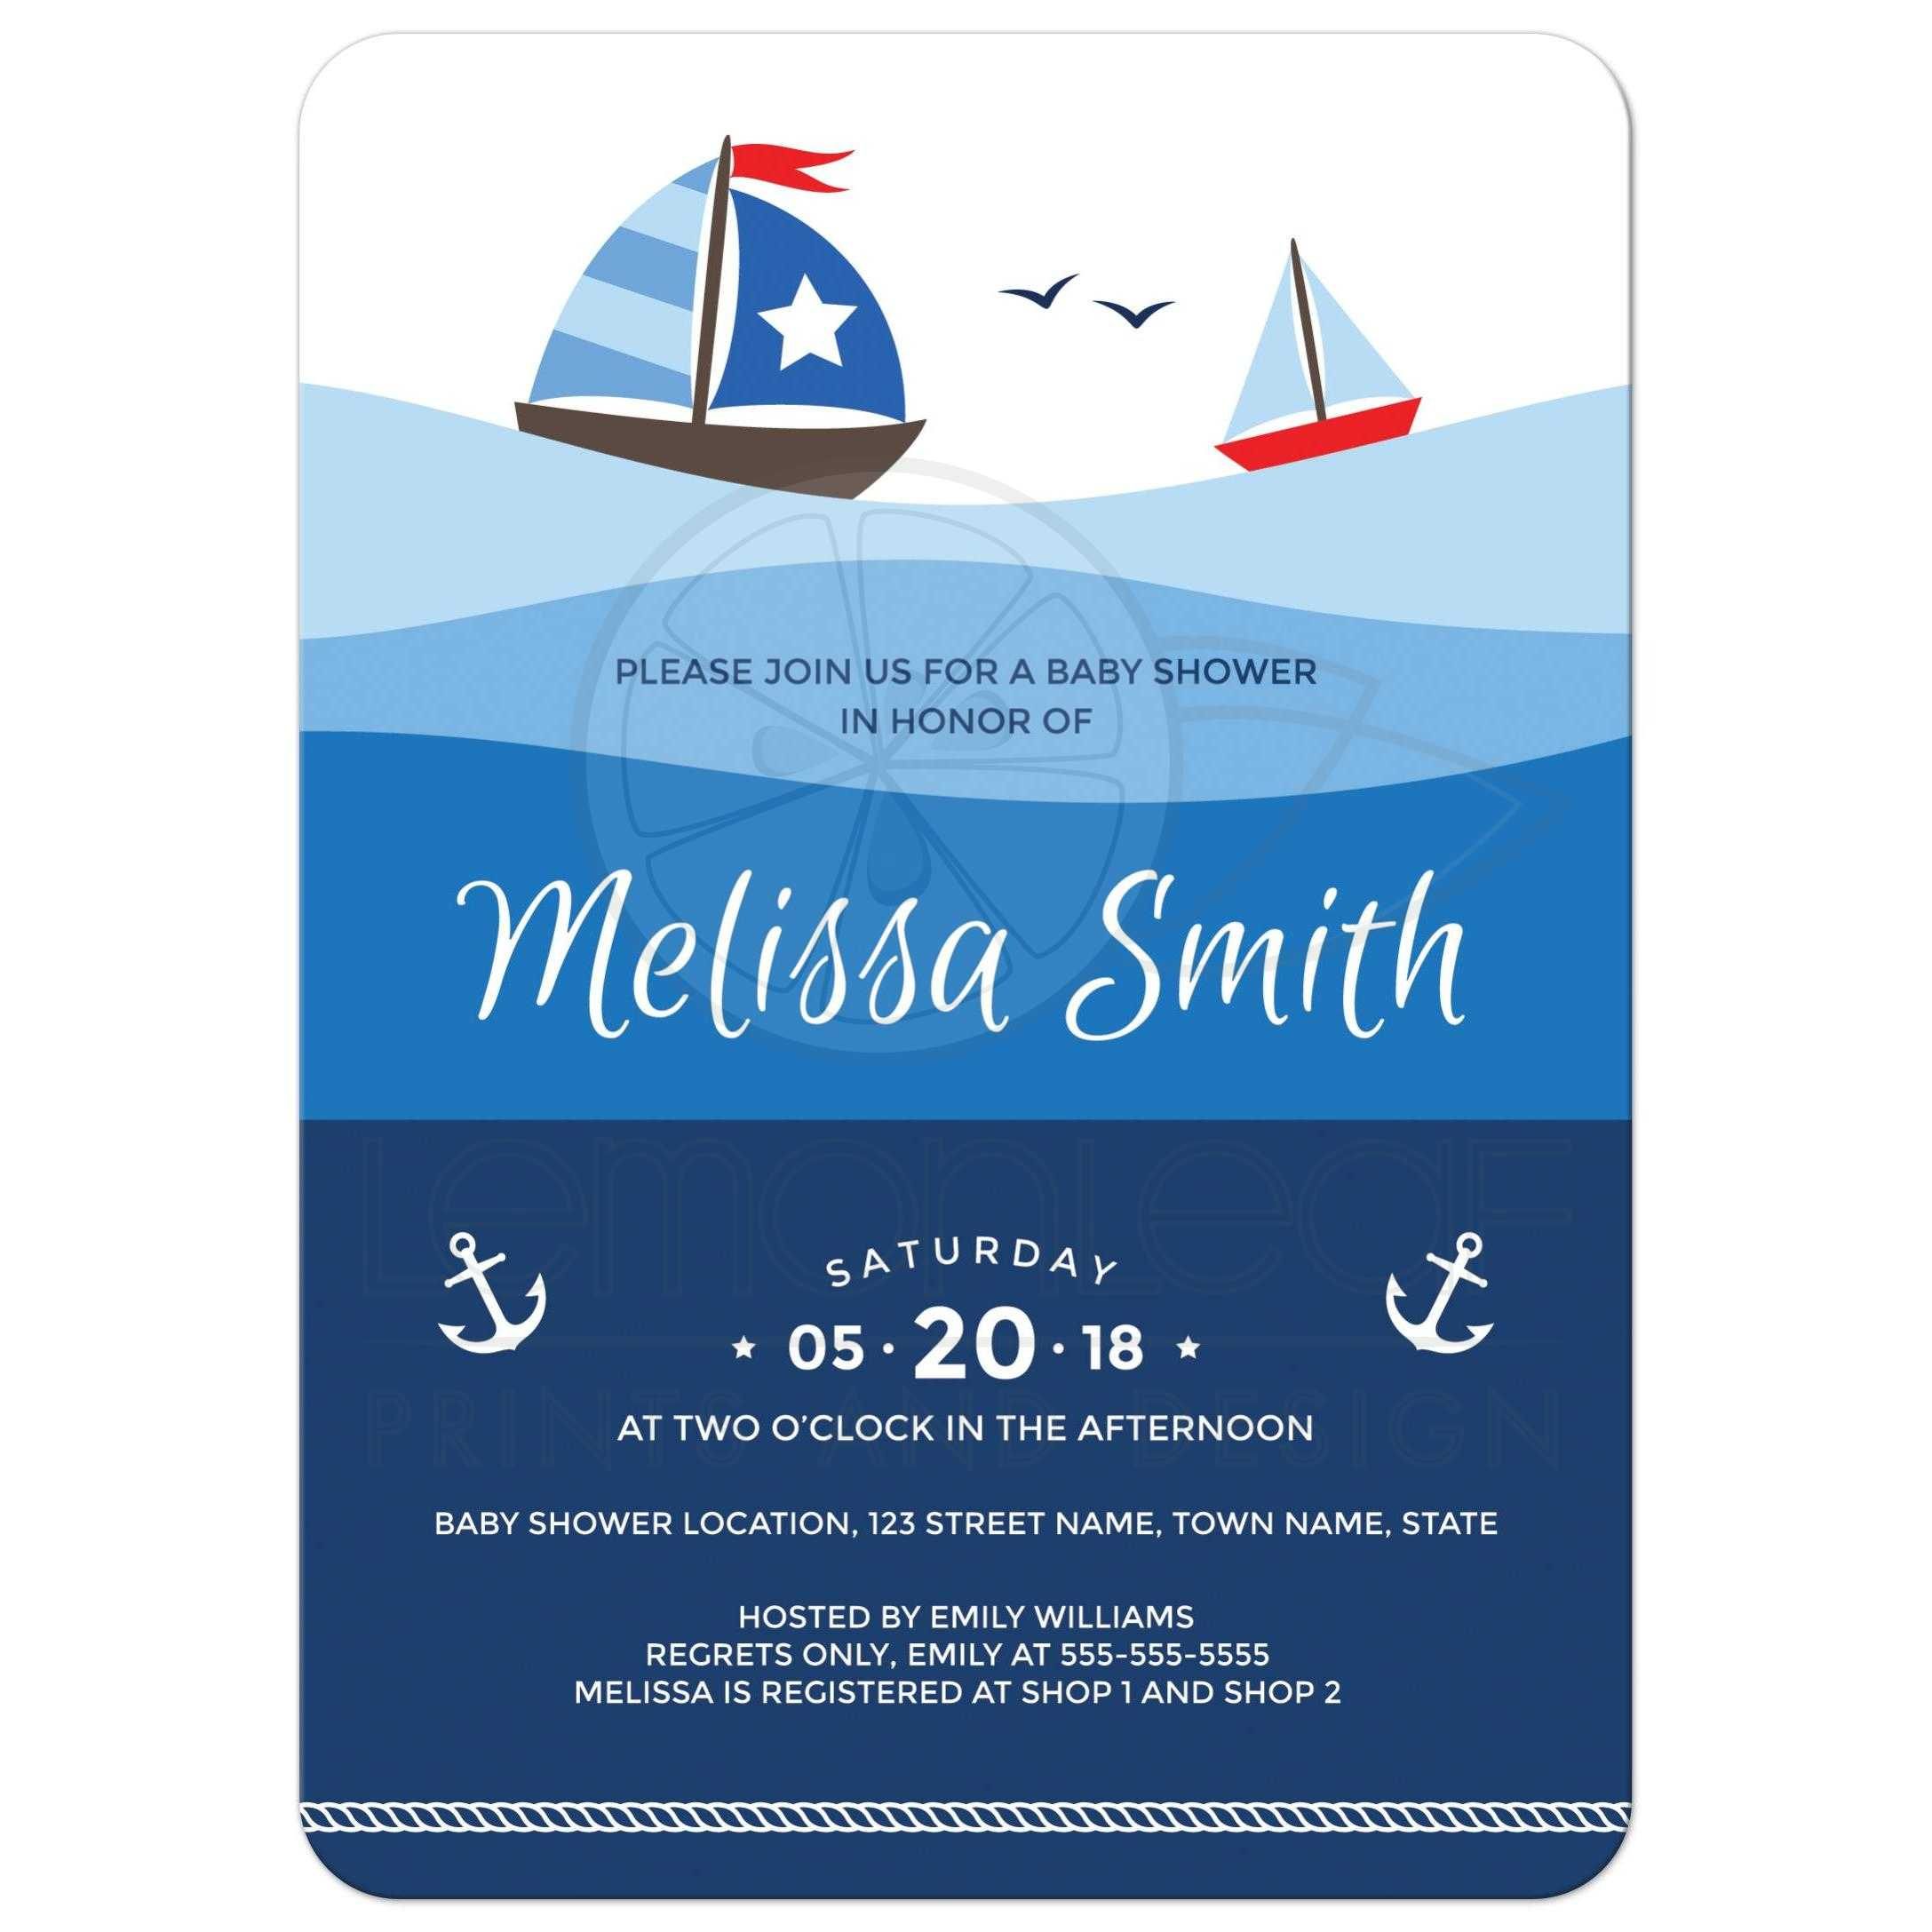 Nautical Baby Shower Invitation With Sailboats On Big Ombre Ocean Waves